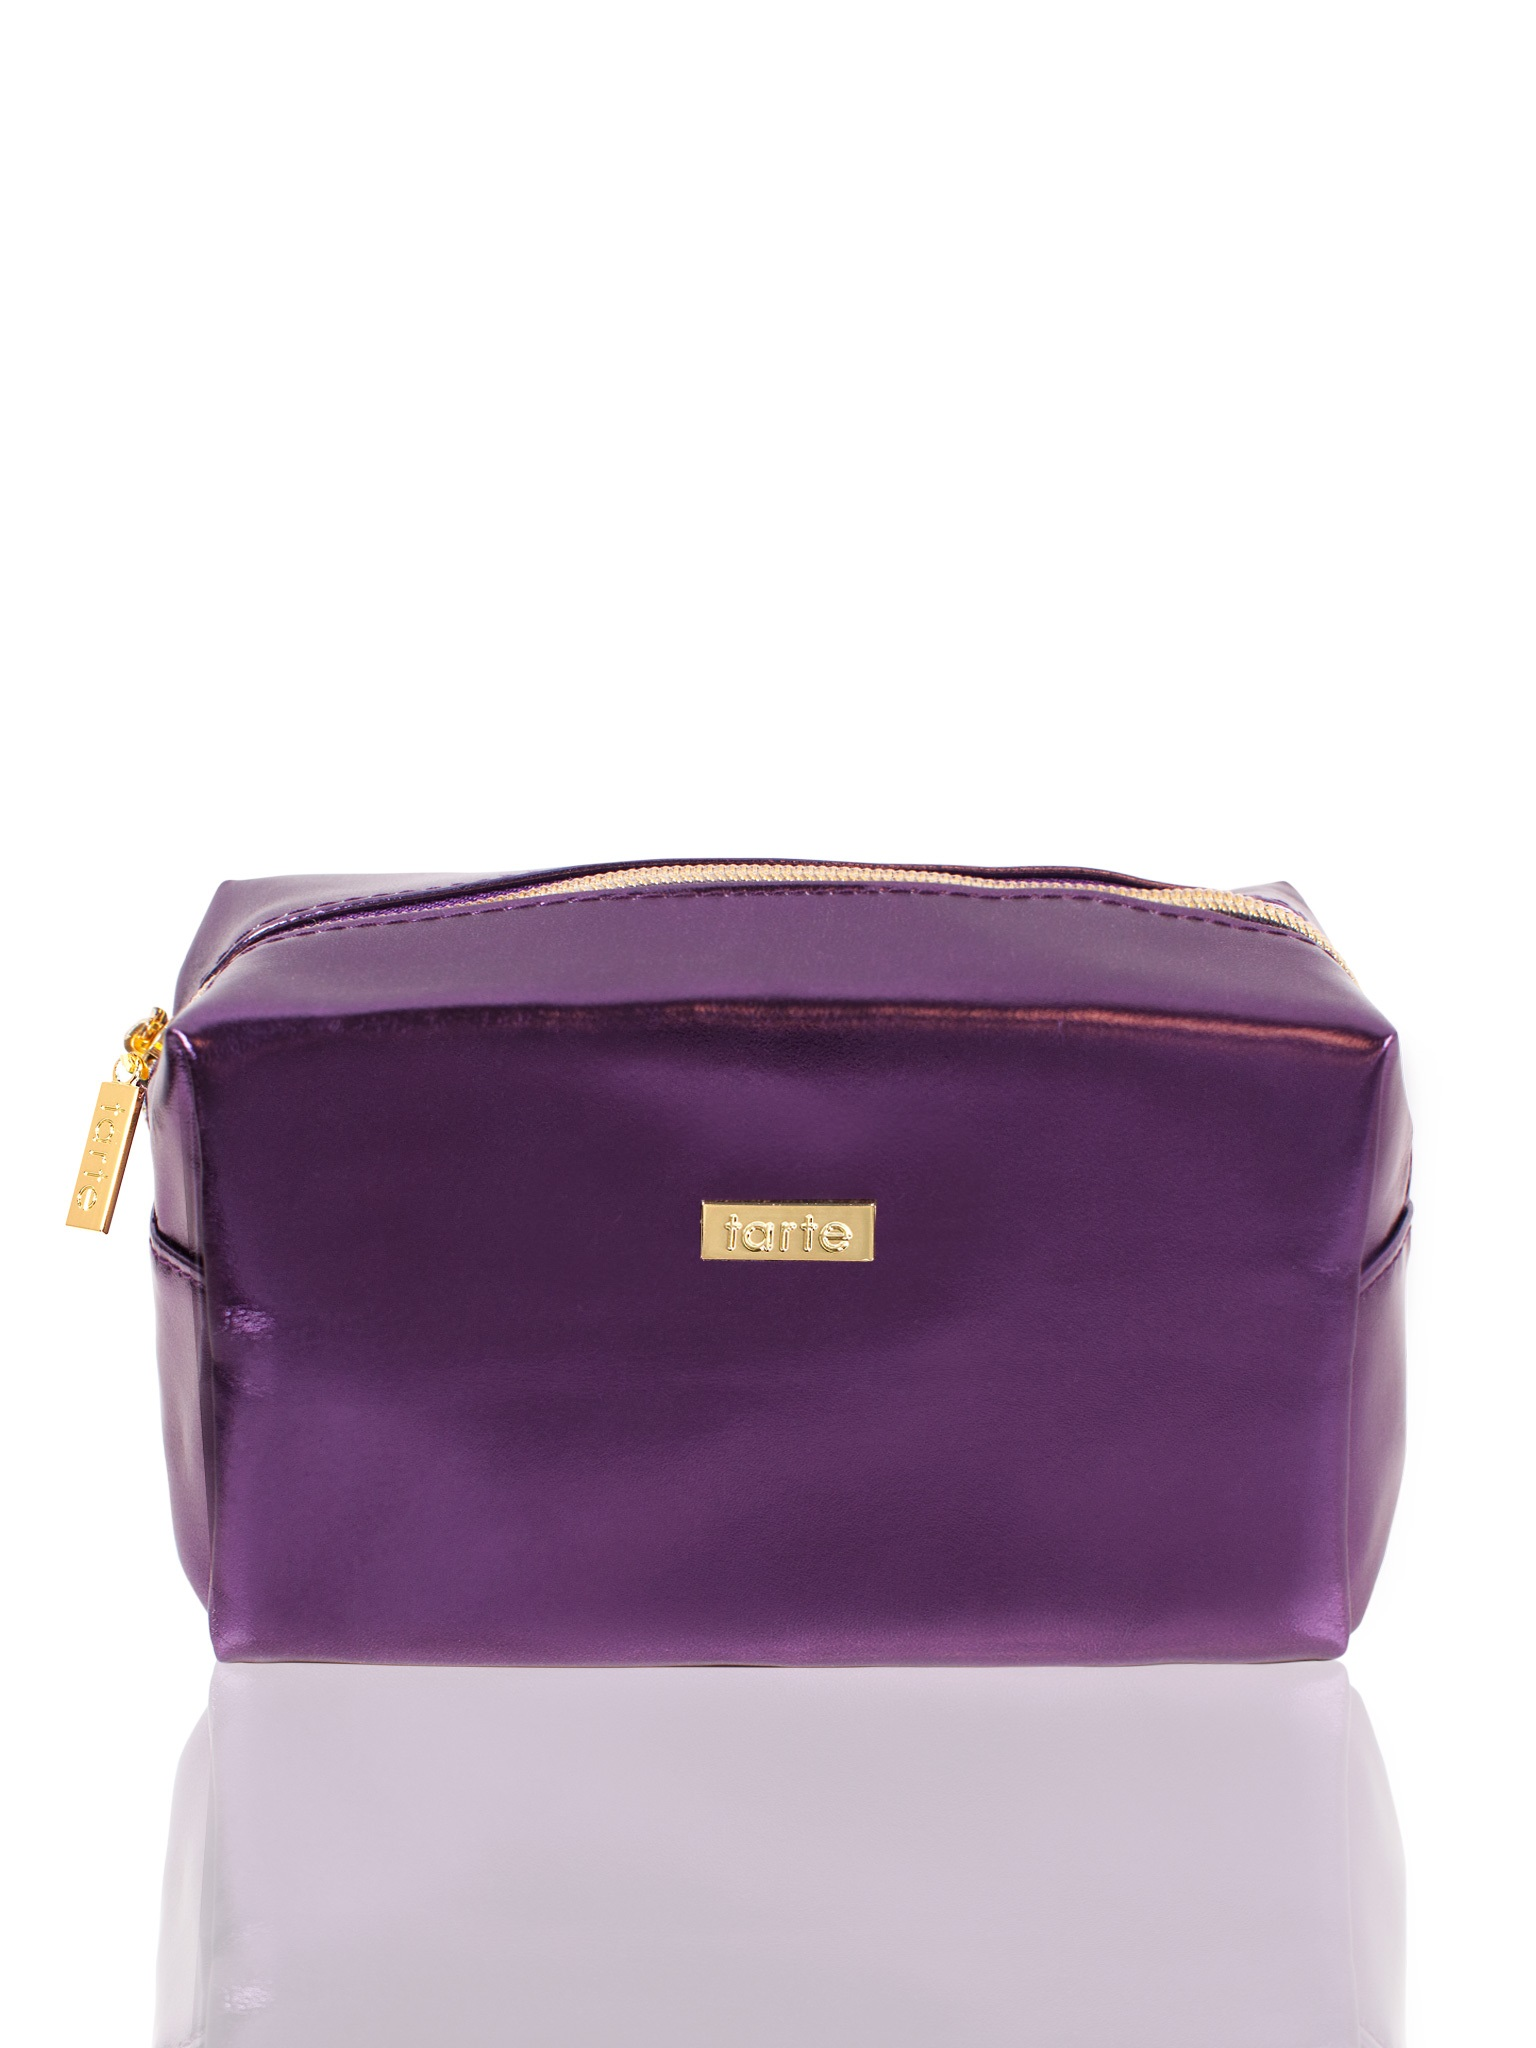 purple metallic bag